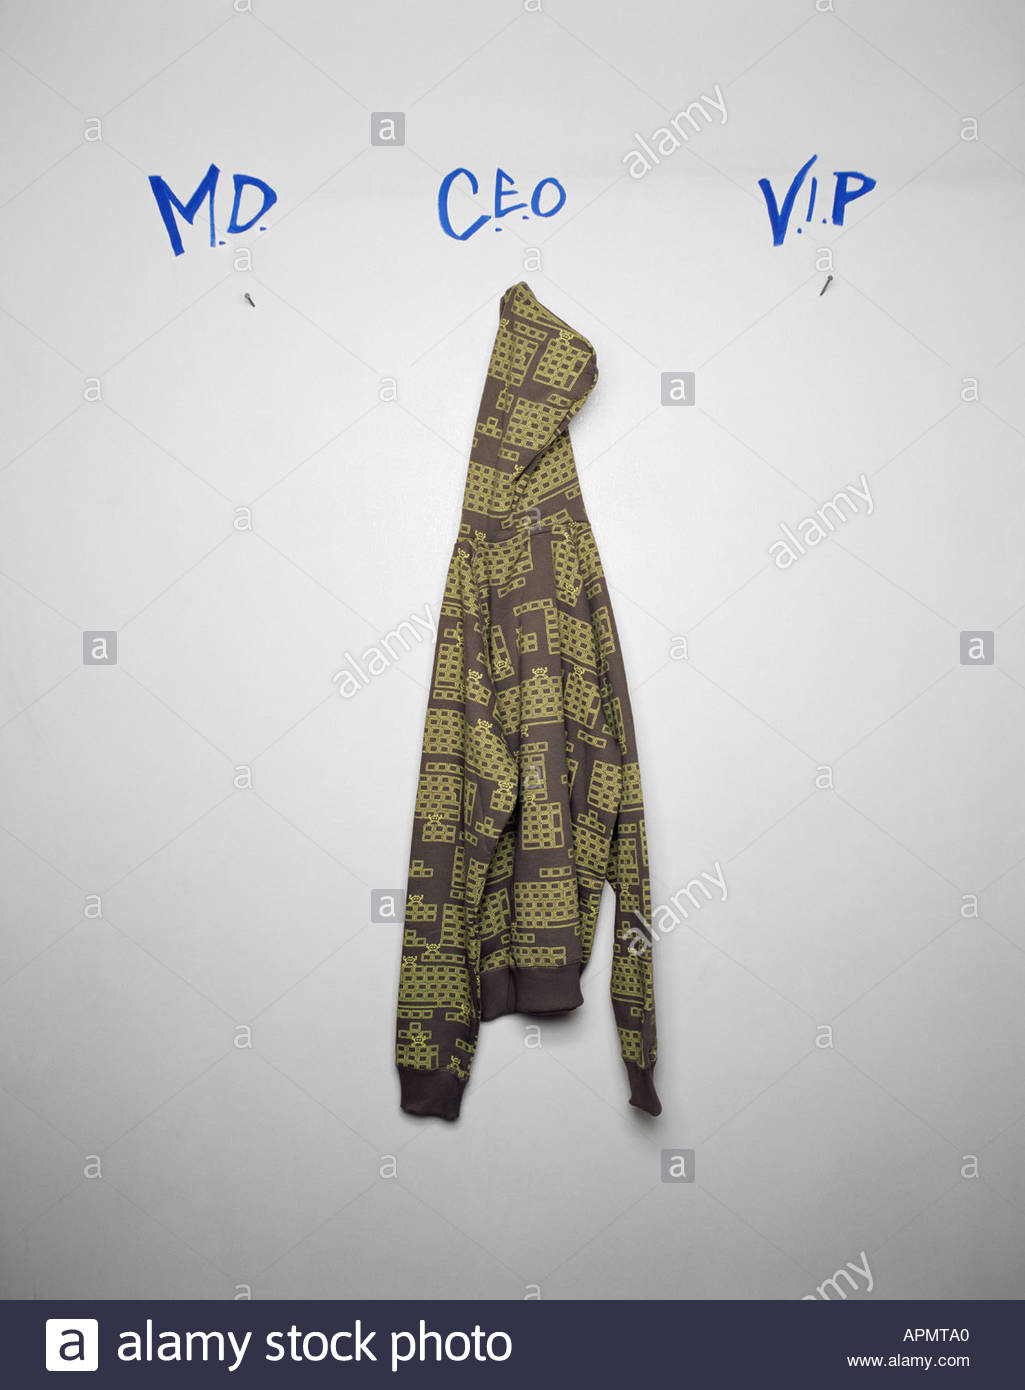 Jacket hanging on a wall - Stock Image